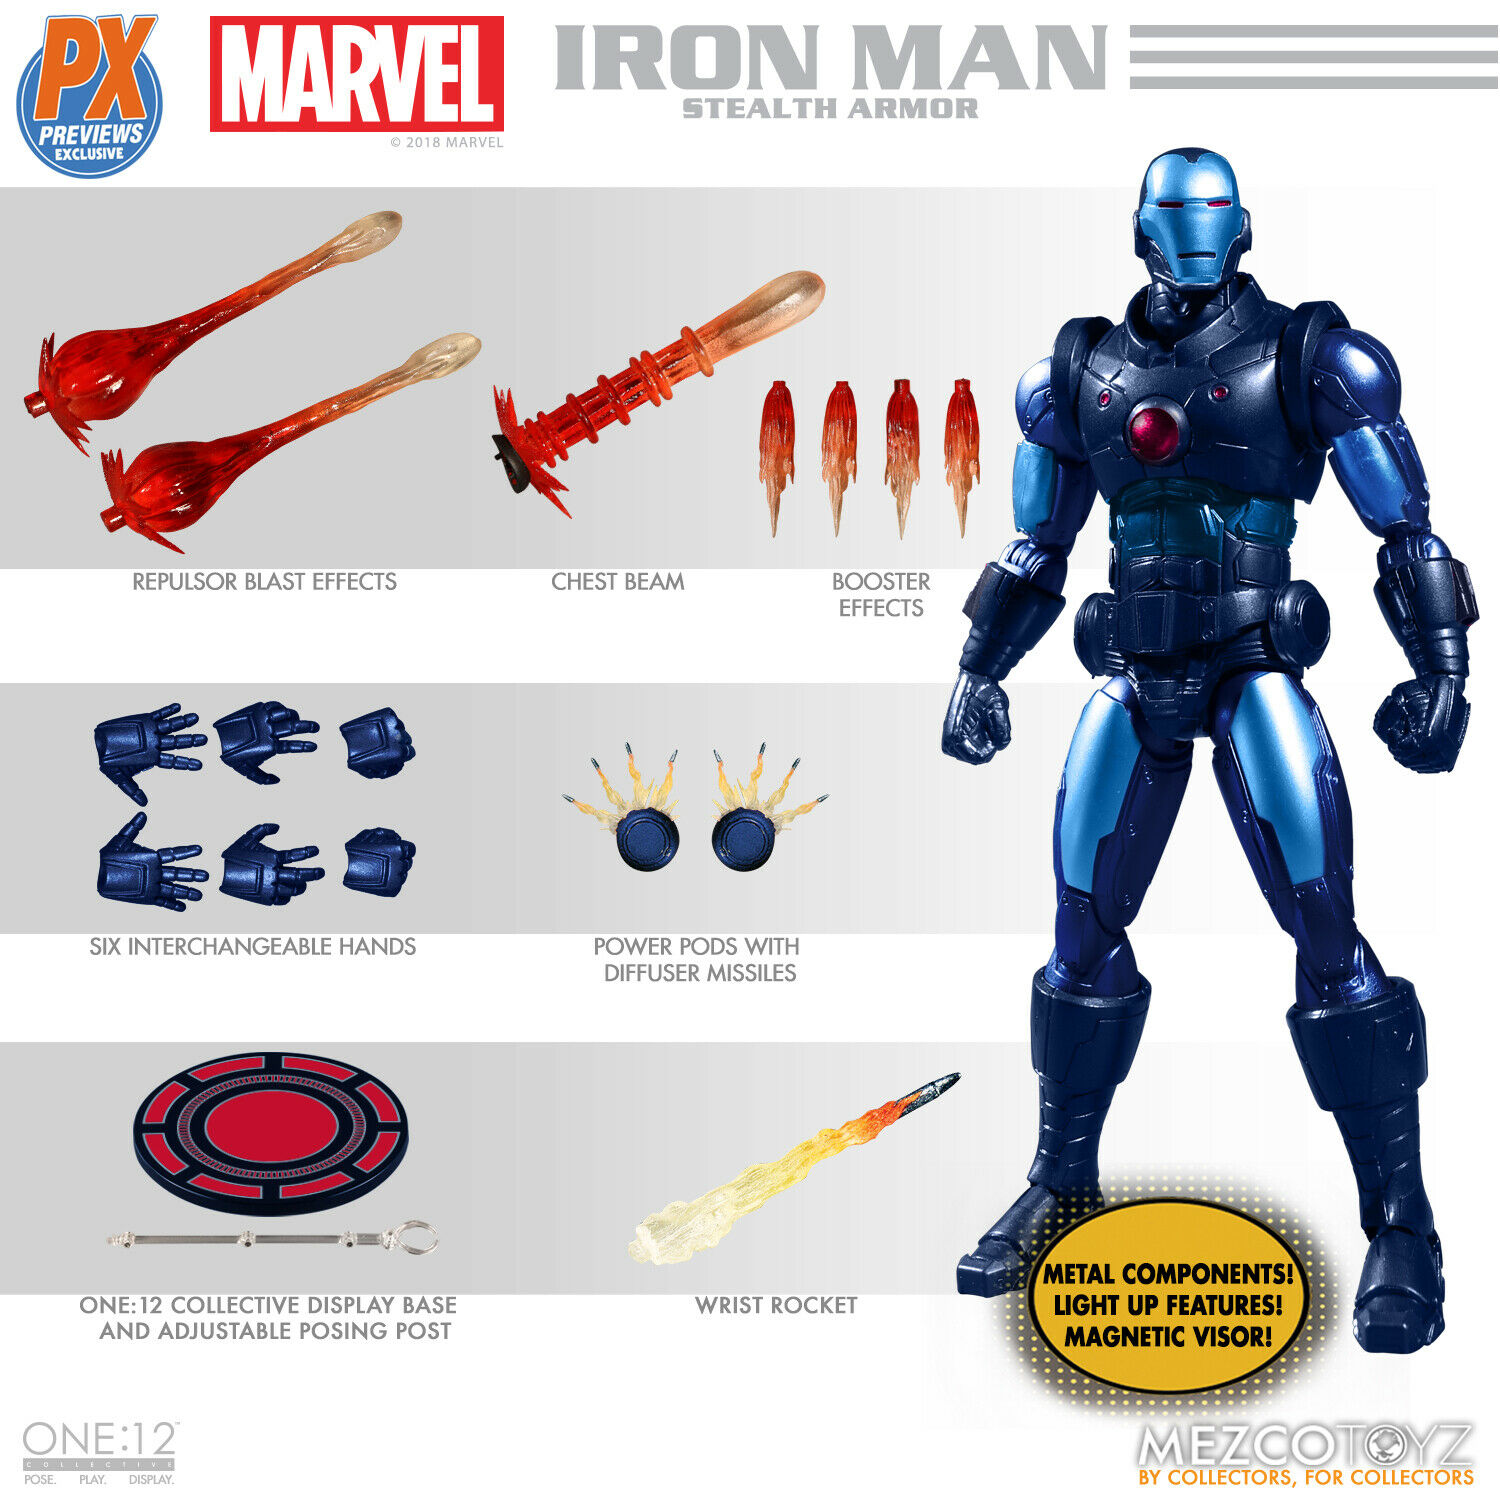 Mezco One One One 12 Marvel Iron Man Stealth Armor Previews Exclusive Action Figure MINT fed220